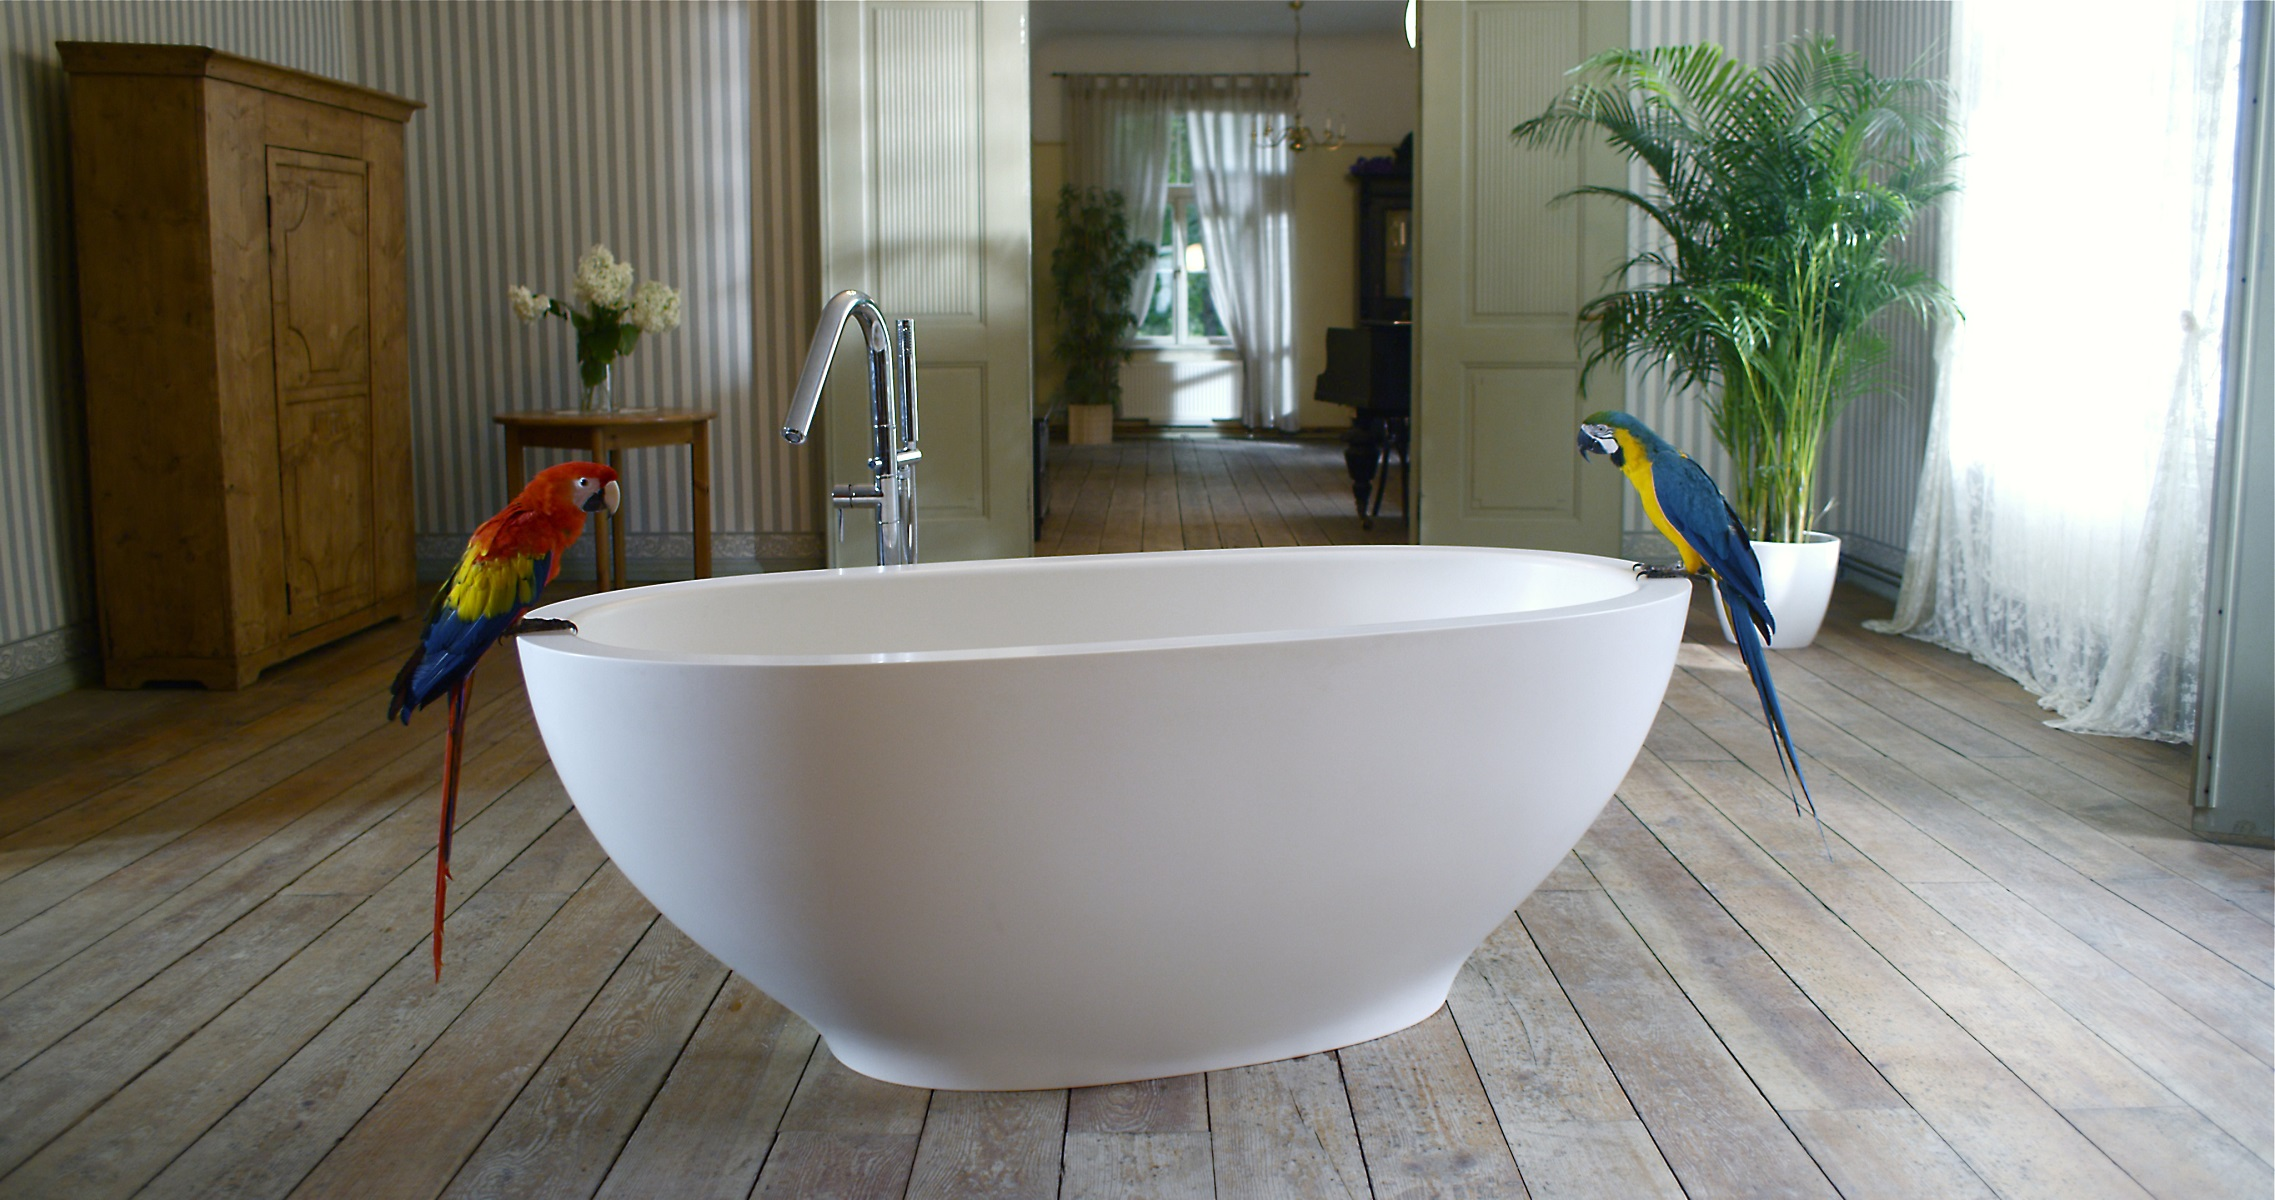 Purescape 503 Large Oval Stone Bathtub web (7)